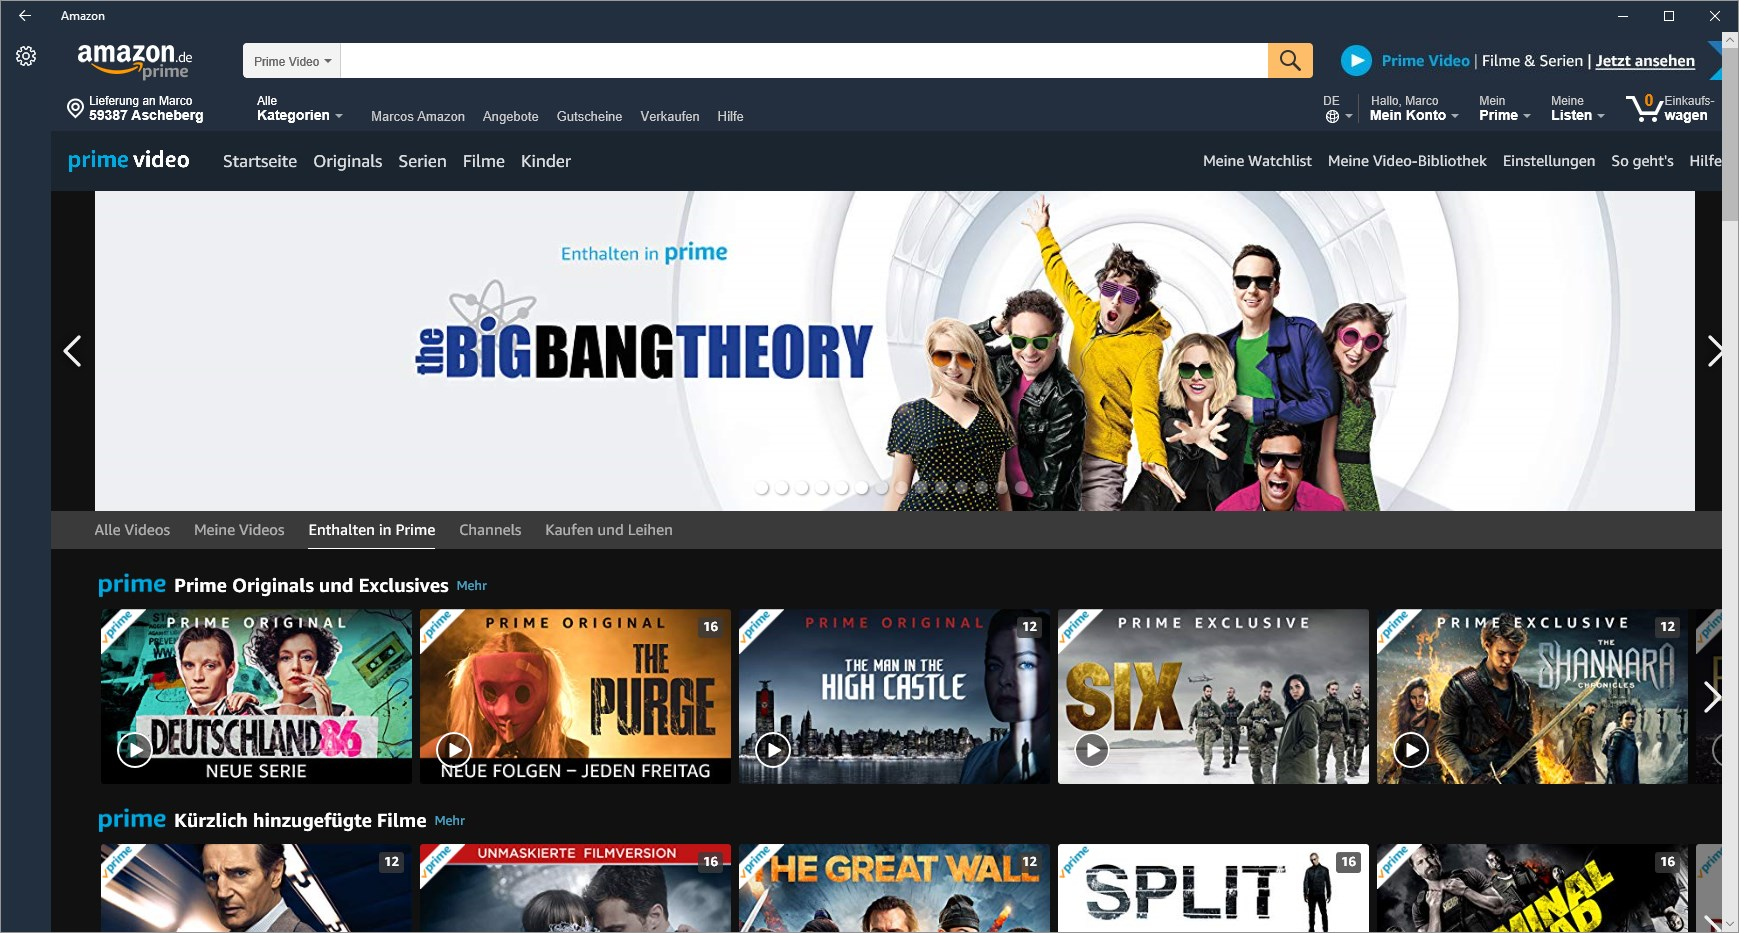 Amazon Prime Video App Für Windows Bilderstrecke Giga